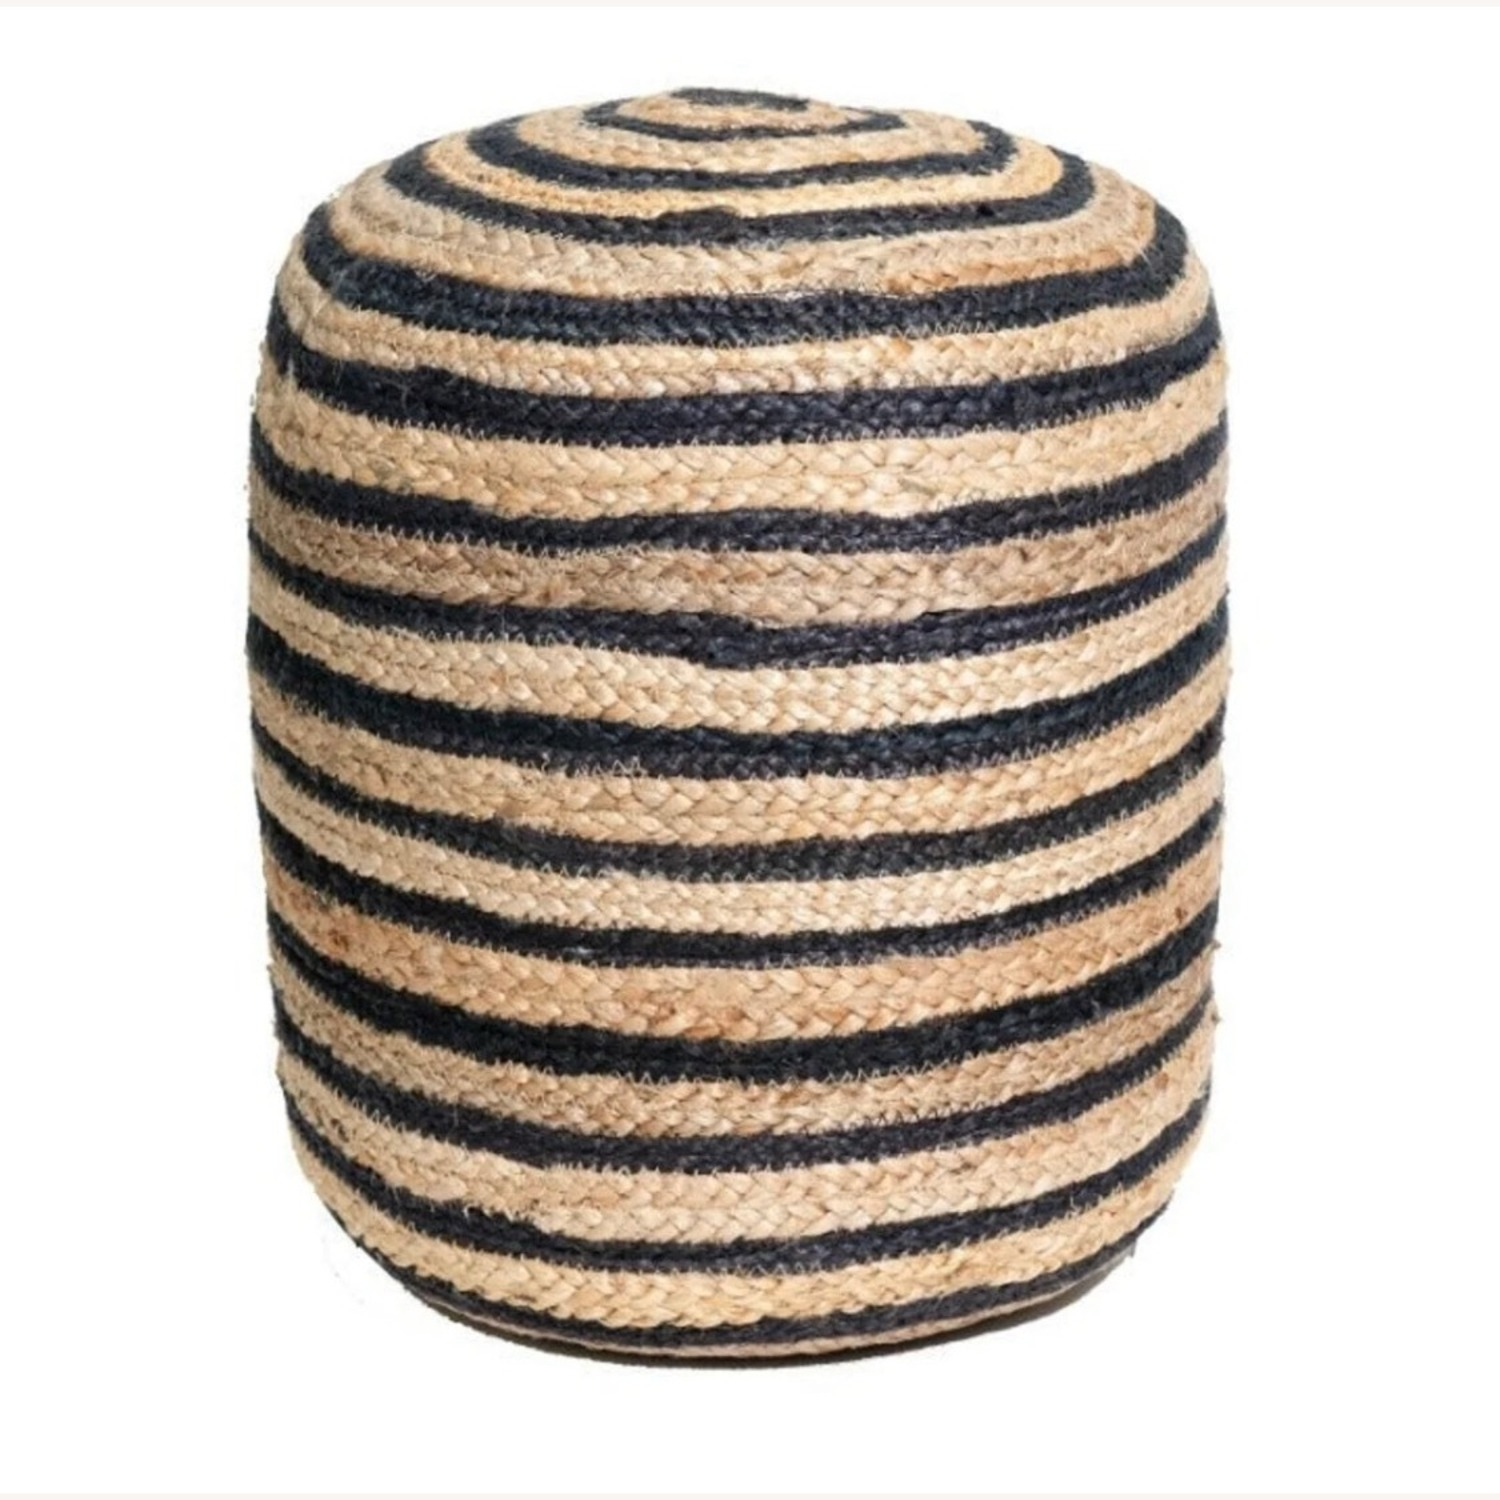 Hand Made Jutee Braided Multi-Coloured Pouf - image-1